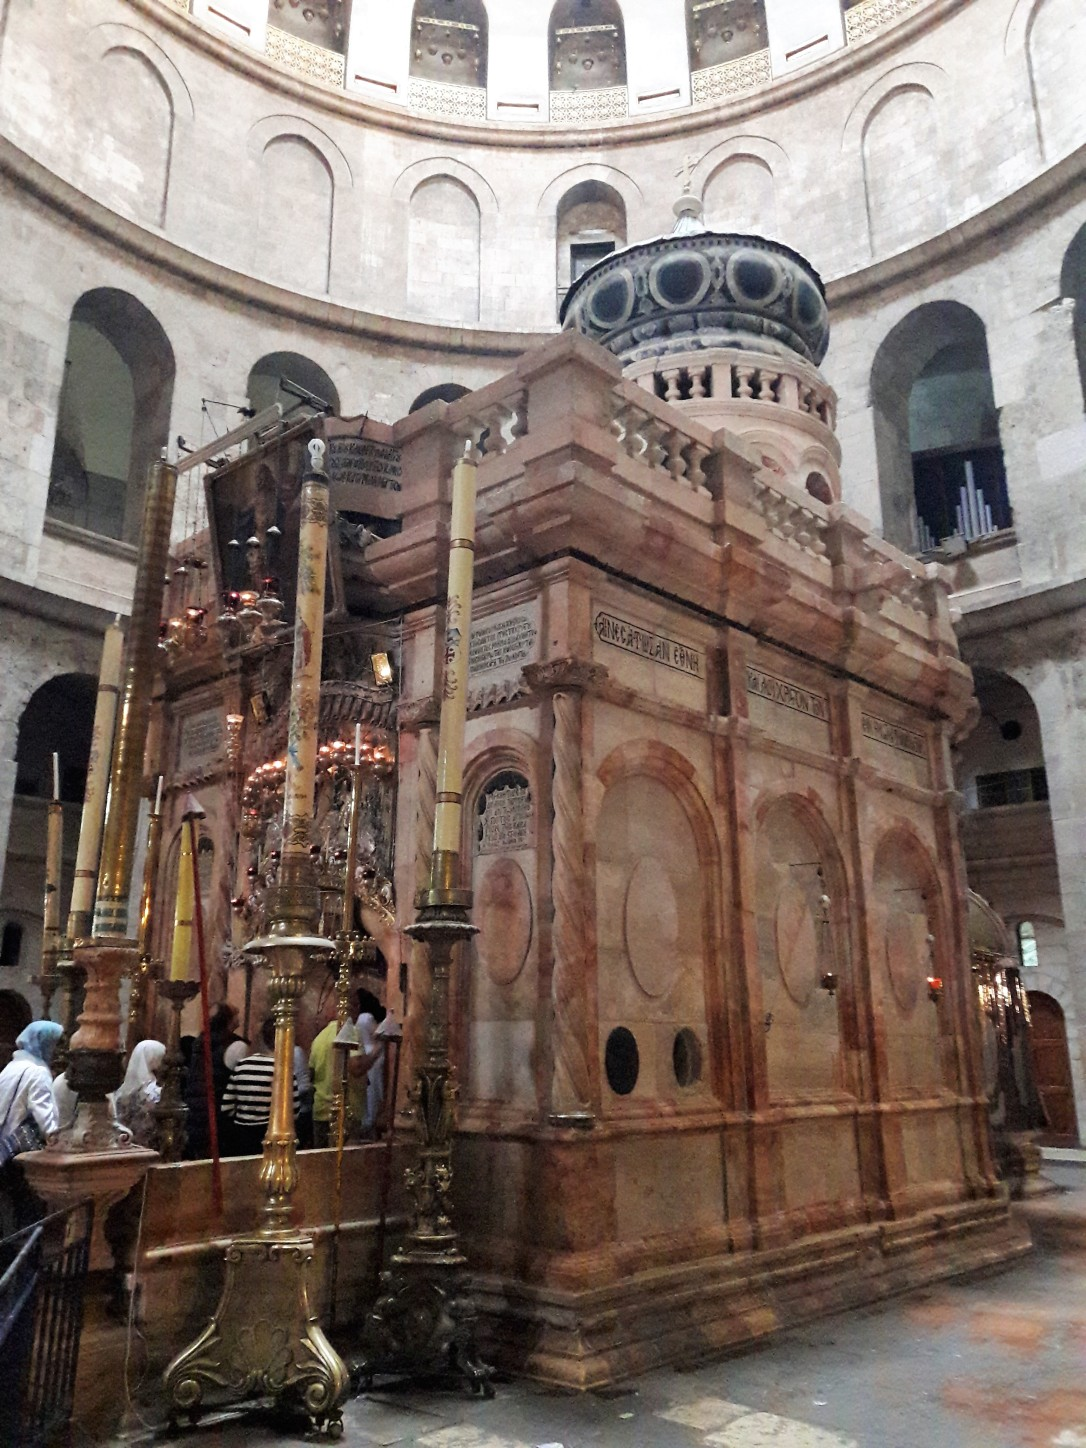 Church of the Holy Sepulchre Aedicule